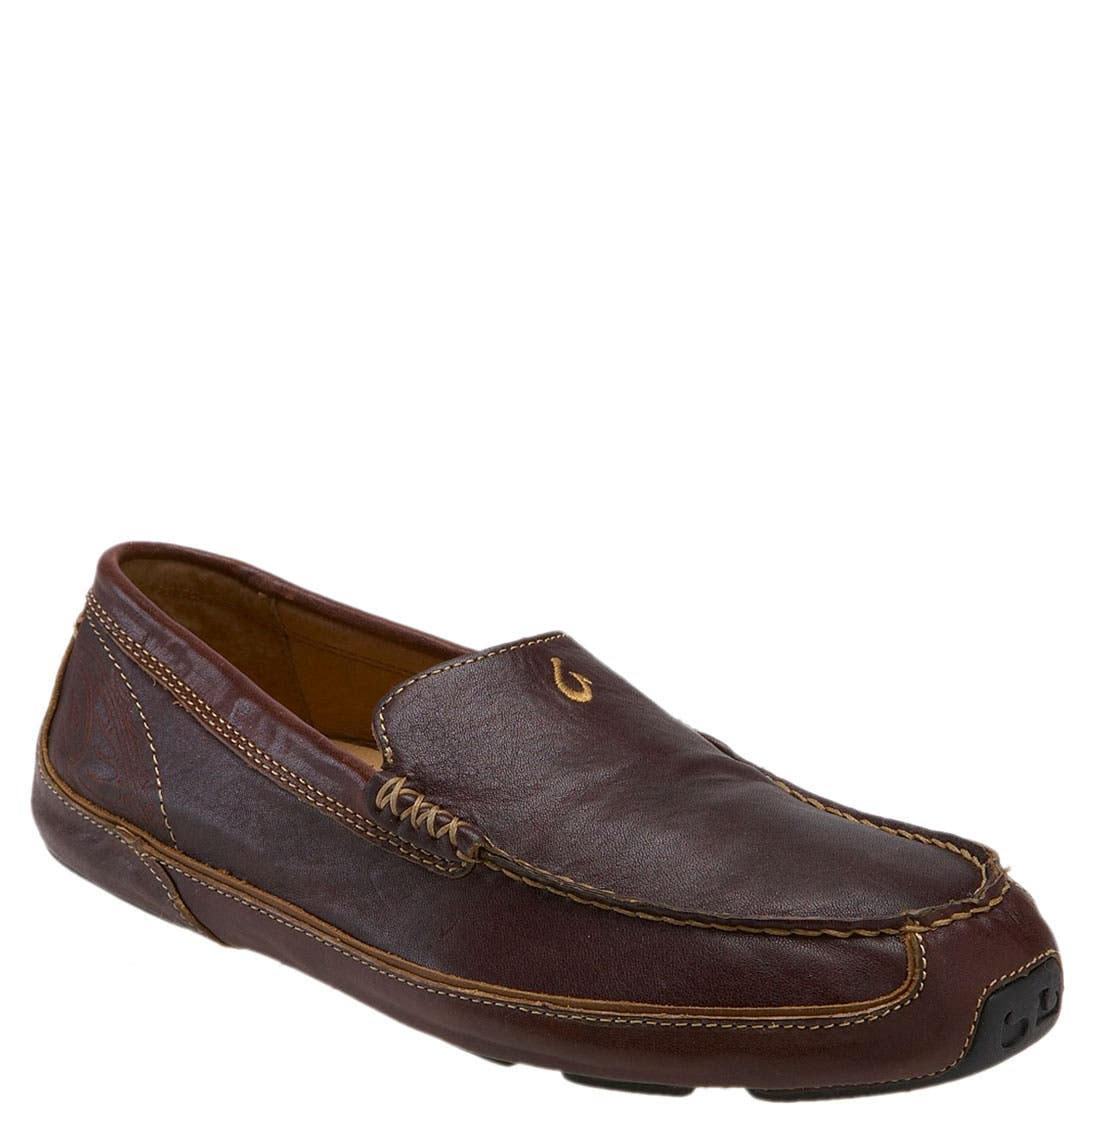 Alternate Image 1 Selected - OluKai 'Lokahi' Slip-On (Men) (Online Only)